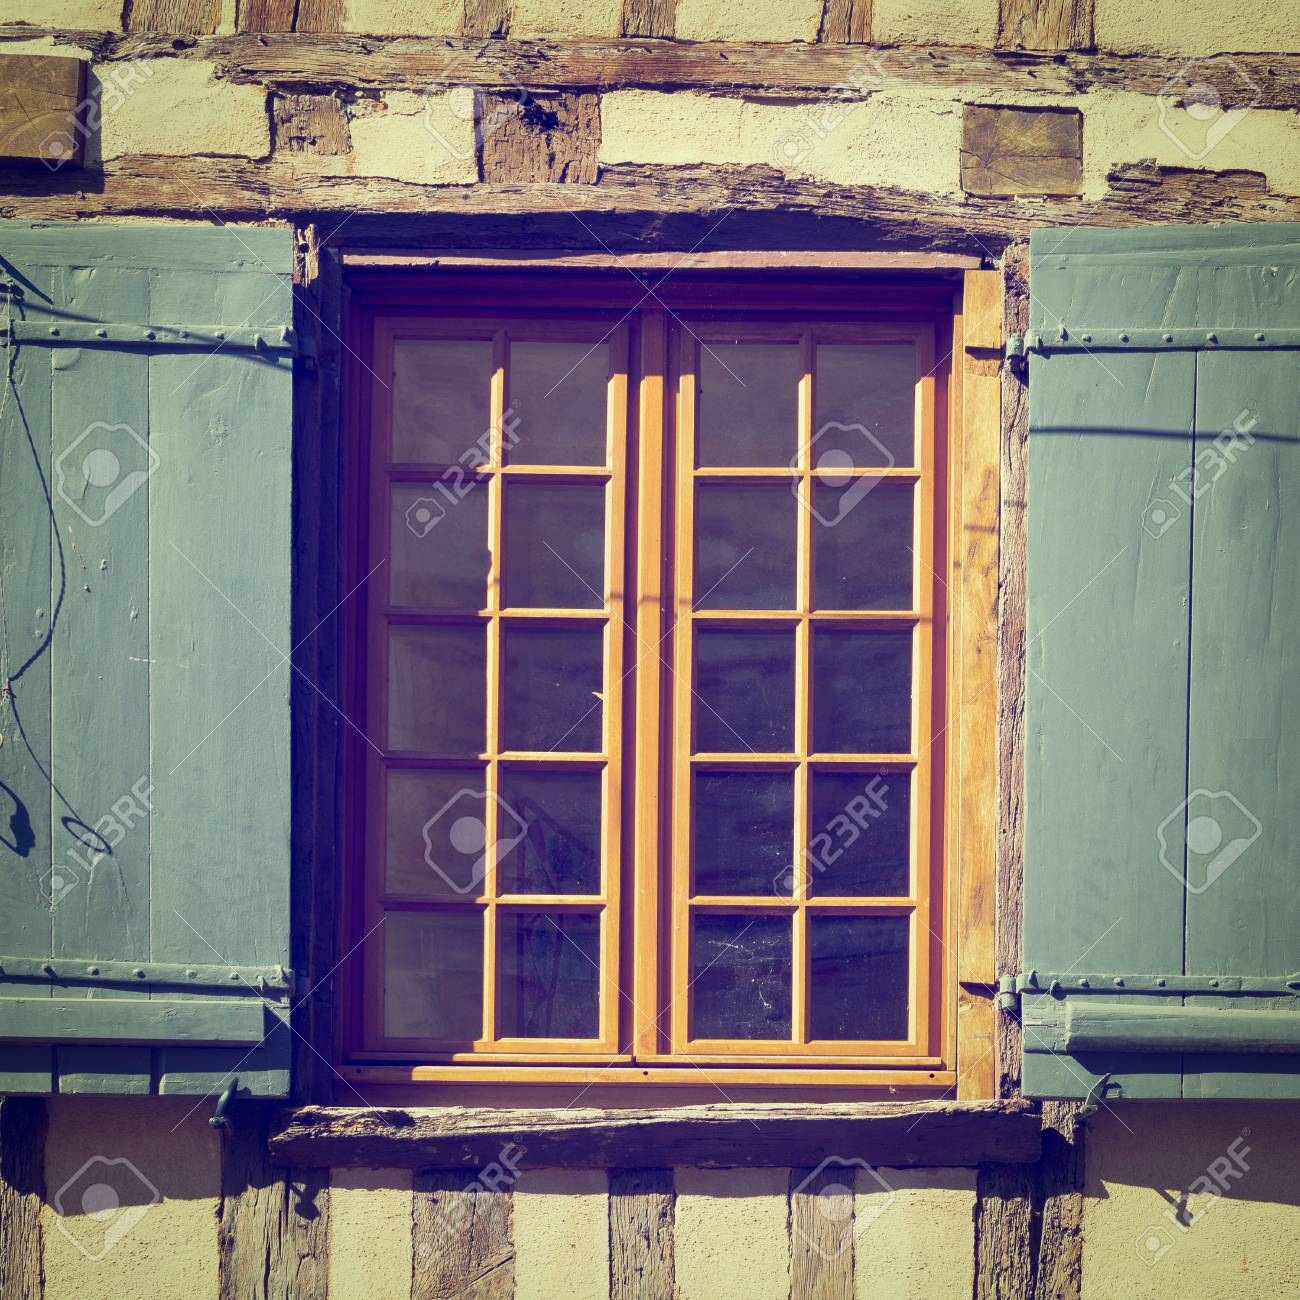 French Window With Open Wooden Shutters Instagram Effect